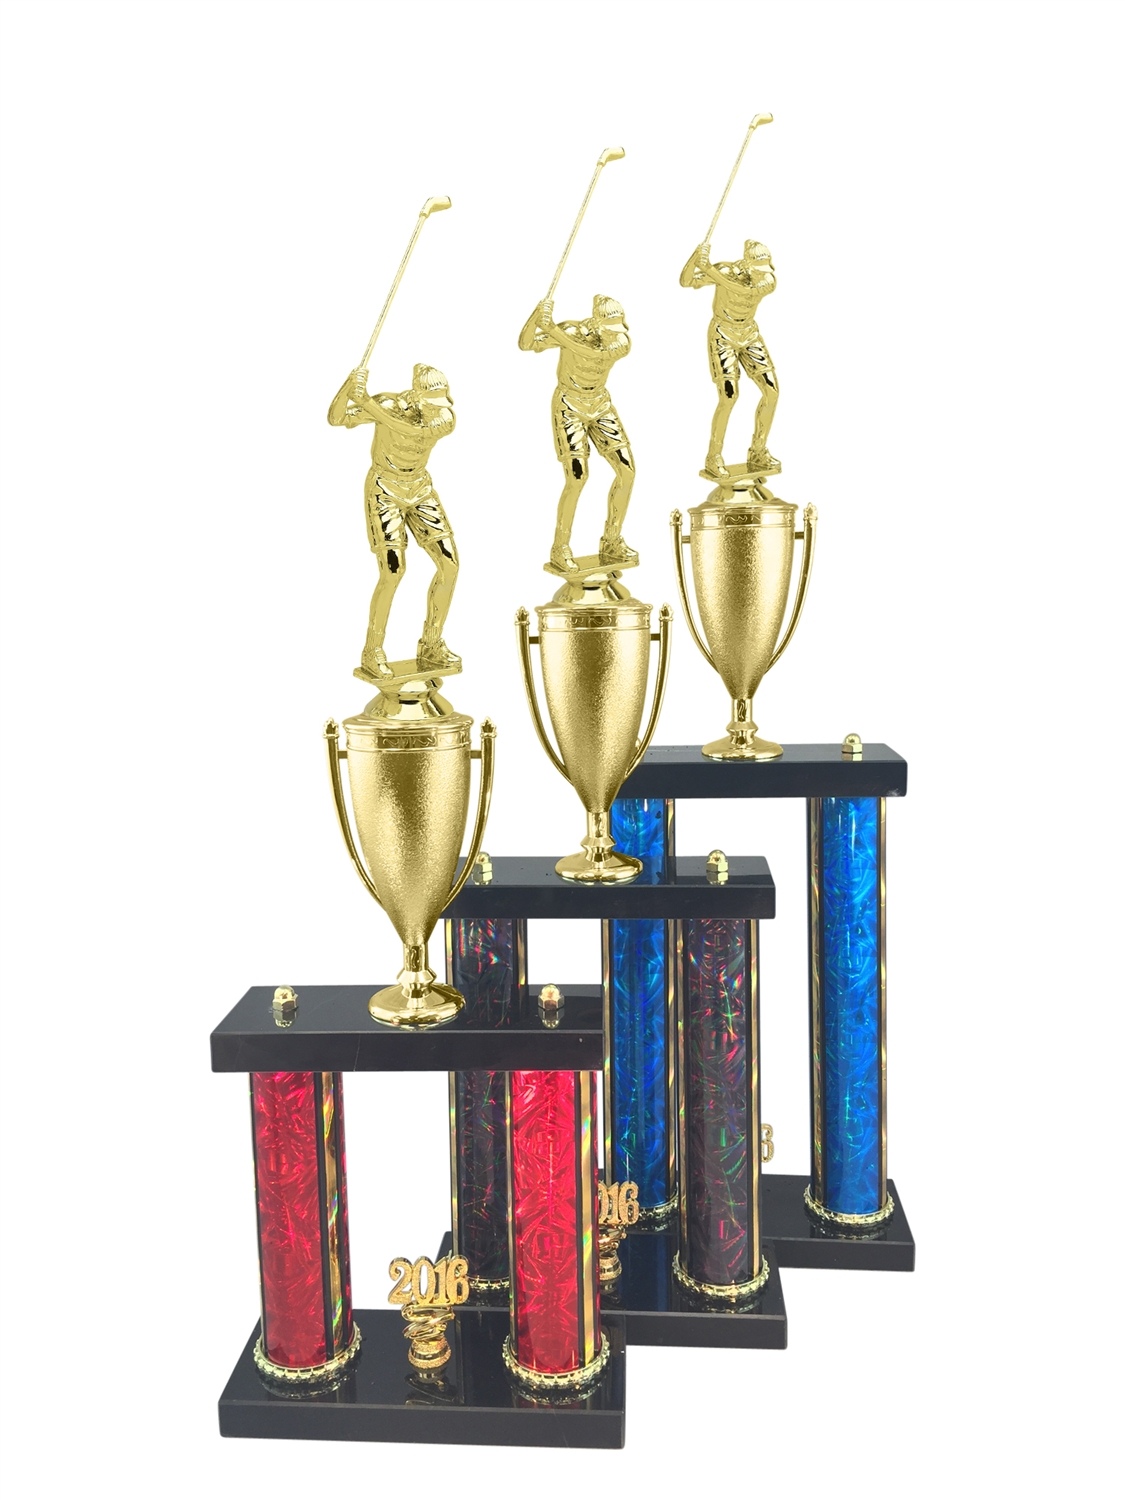 Female Golf Trophy Available in 11 Color & 3 Size Options